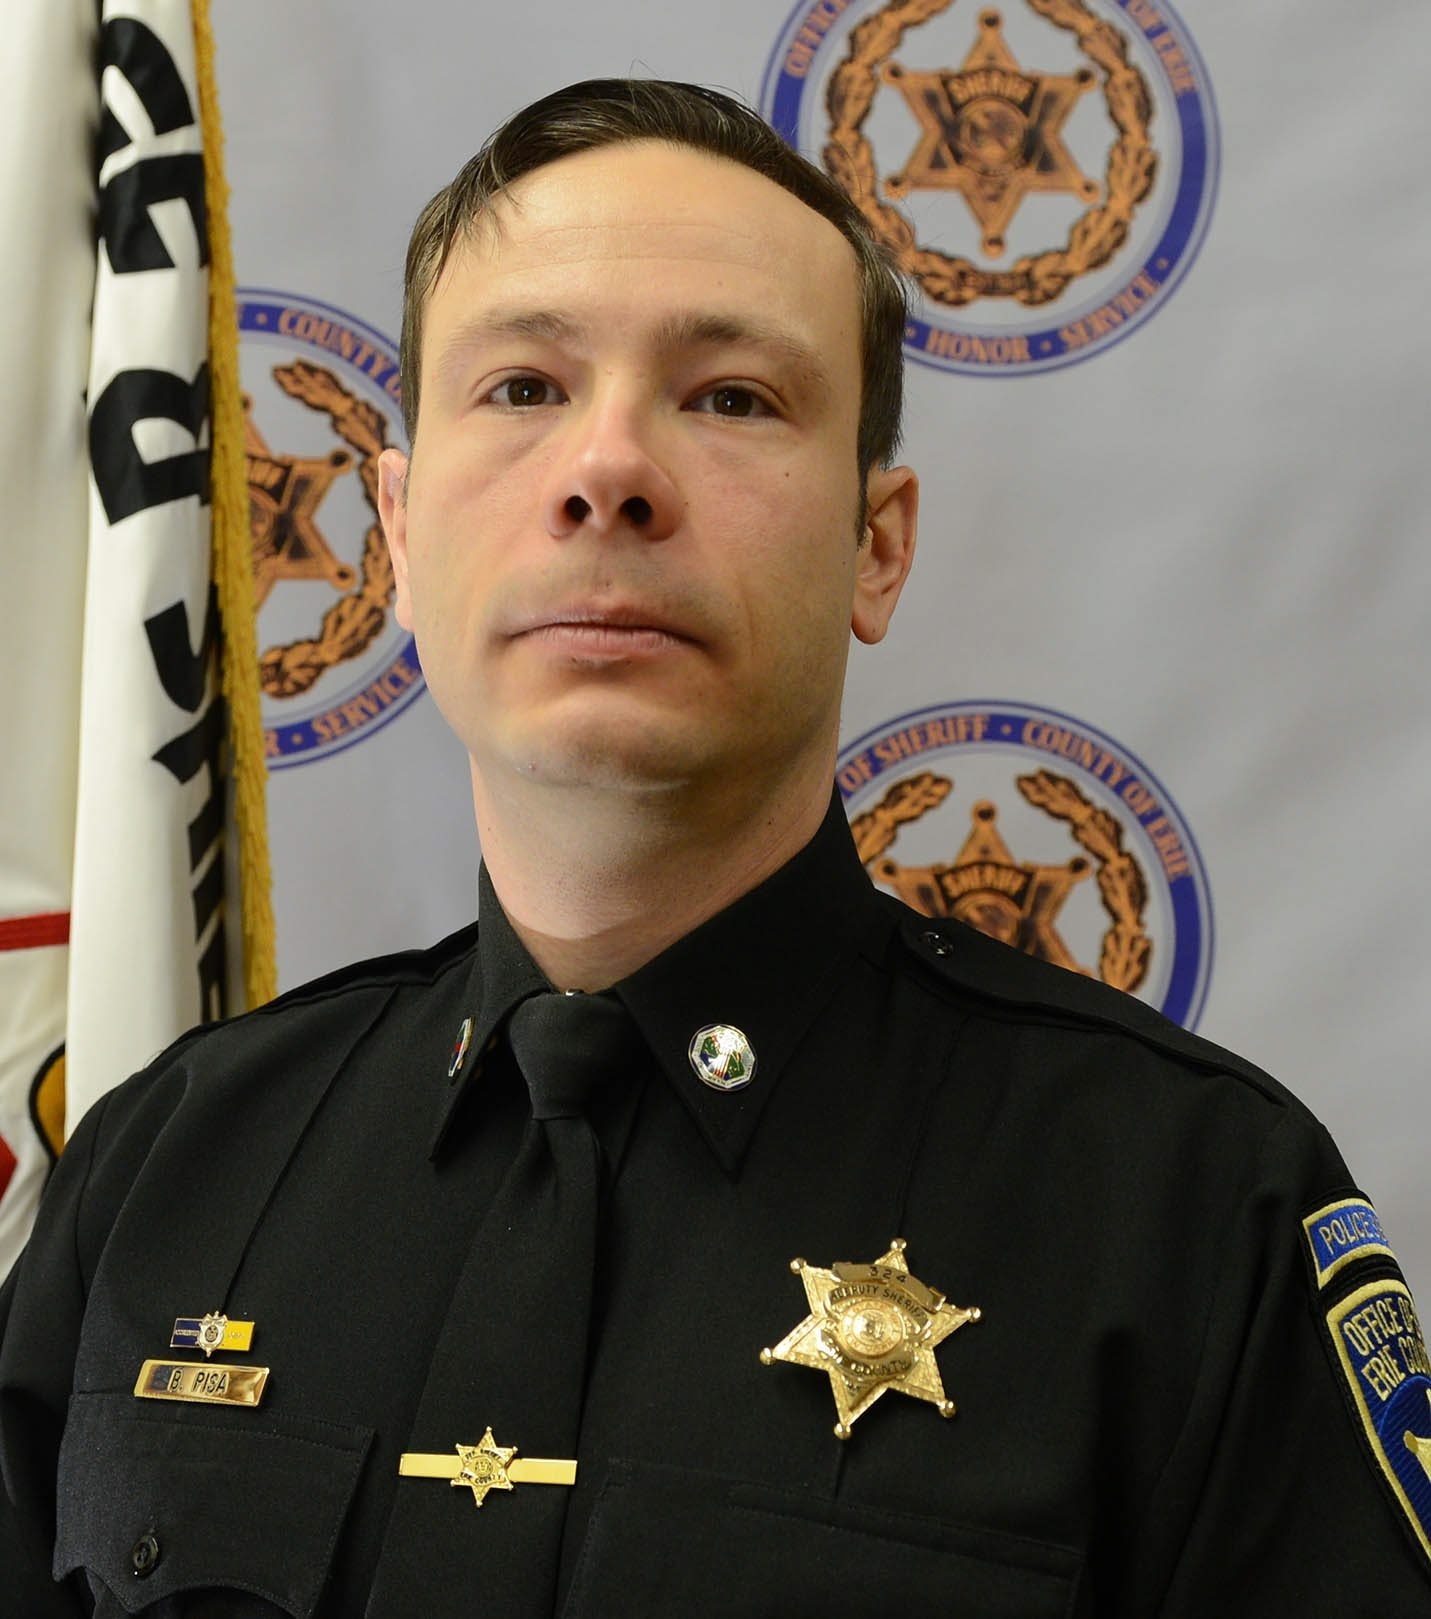 Deputy Benjamin Pisa will receive the William R. Dils Deputy of the Year Award.